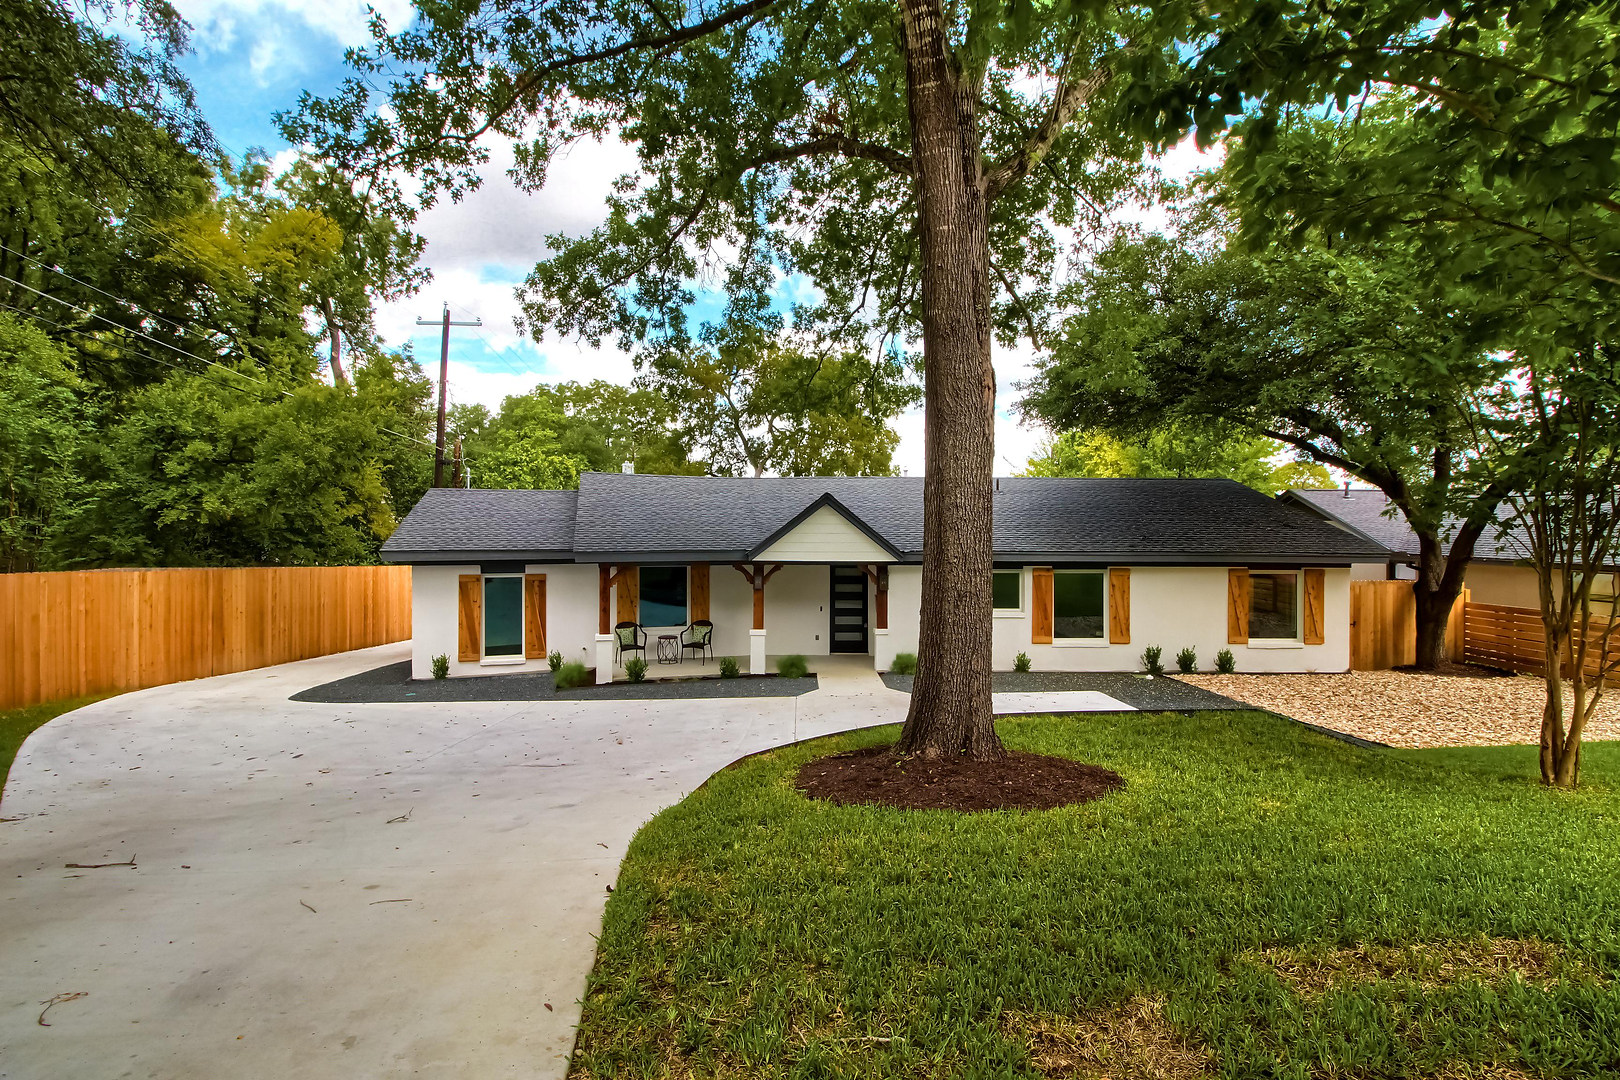 Front of the Home Renovation on West 29th in Austin, Texas